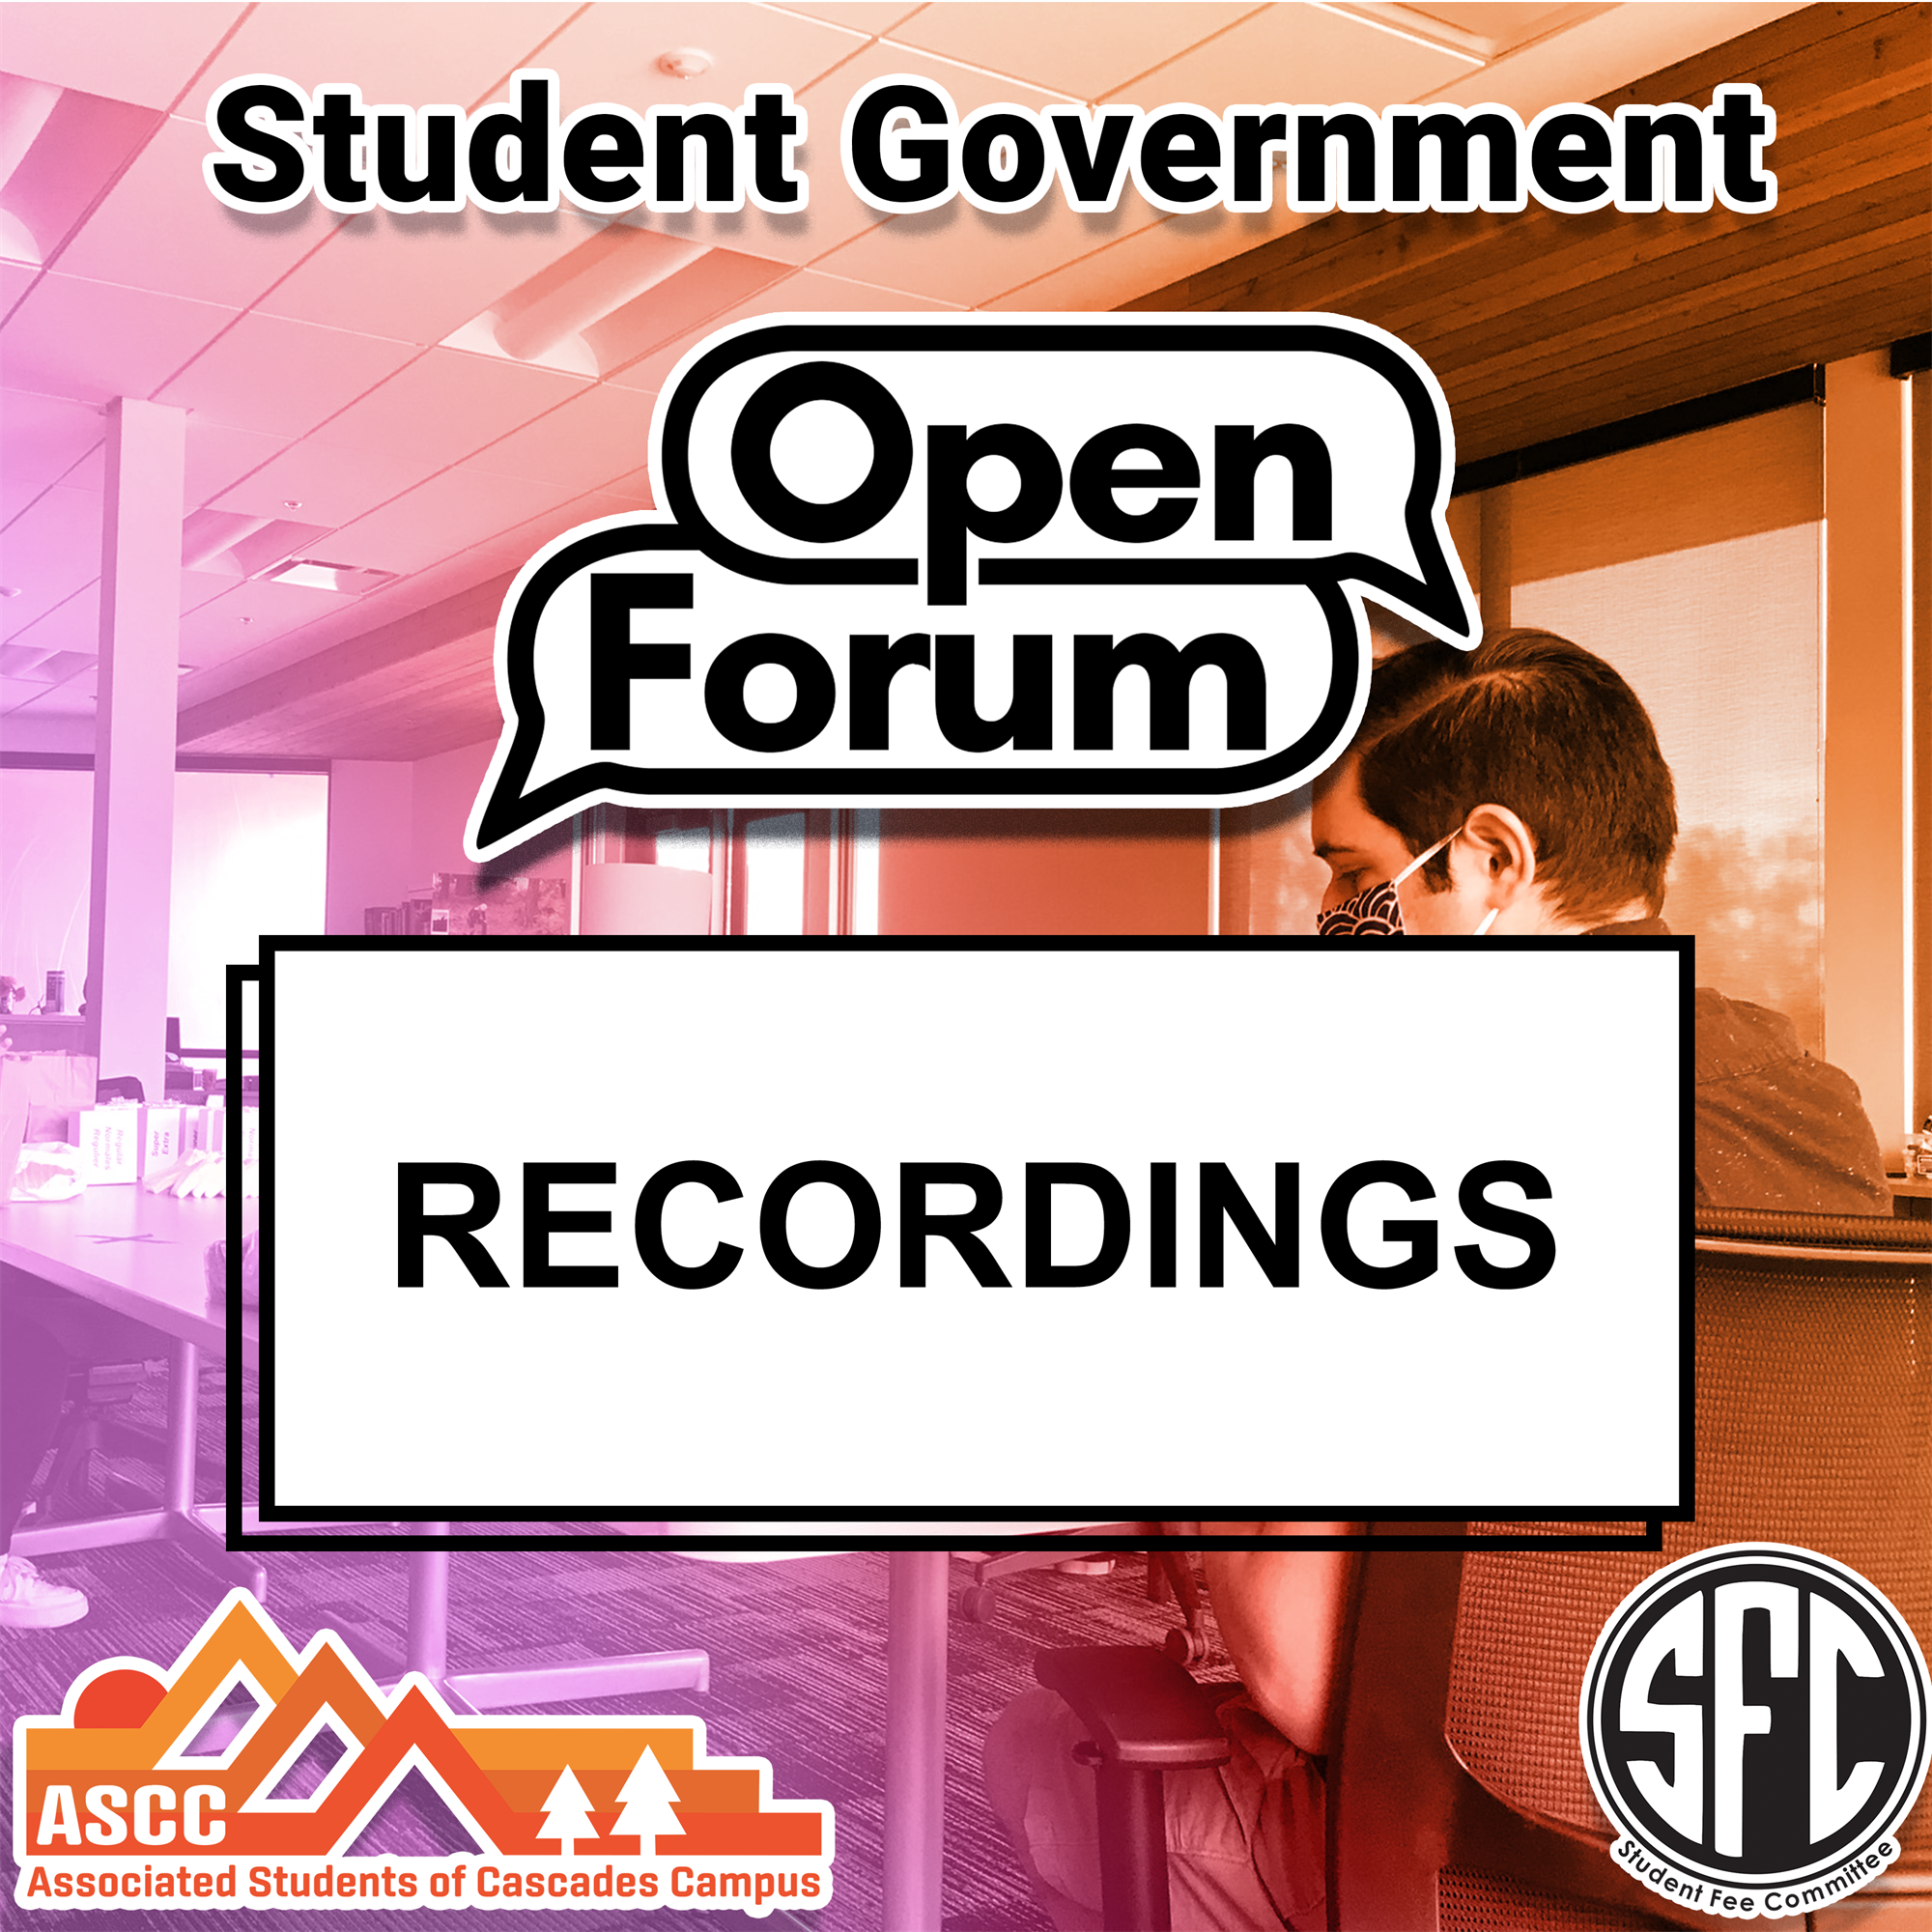 Student Government Open Forum Recordings